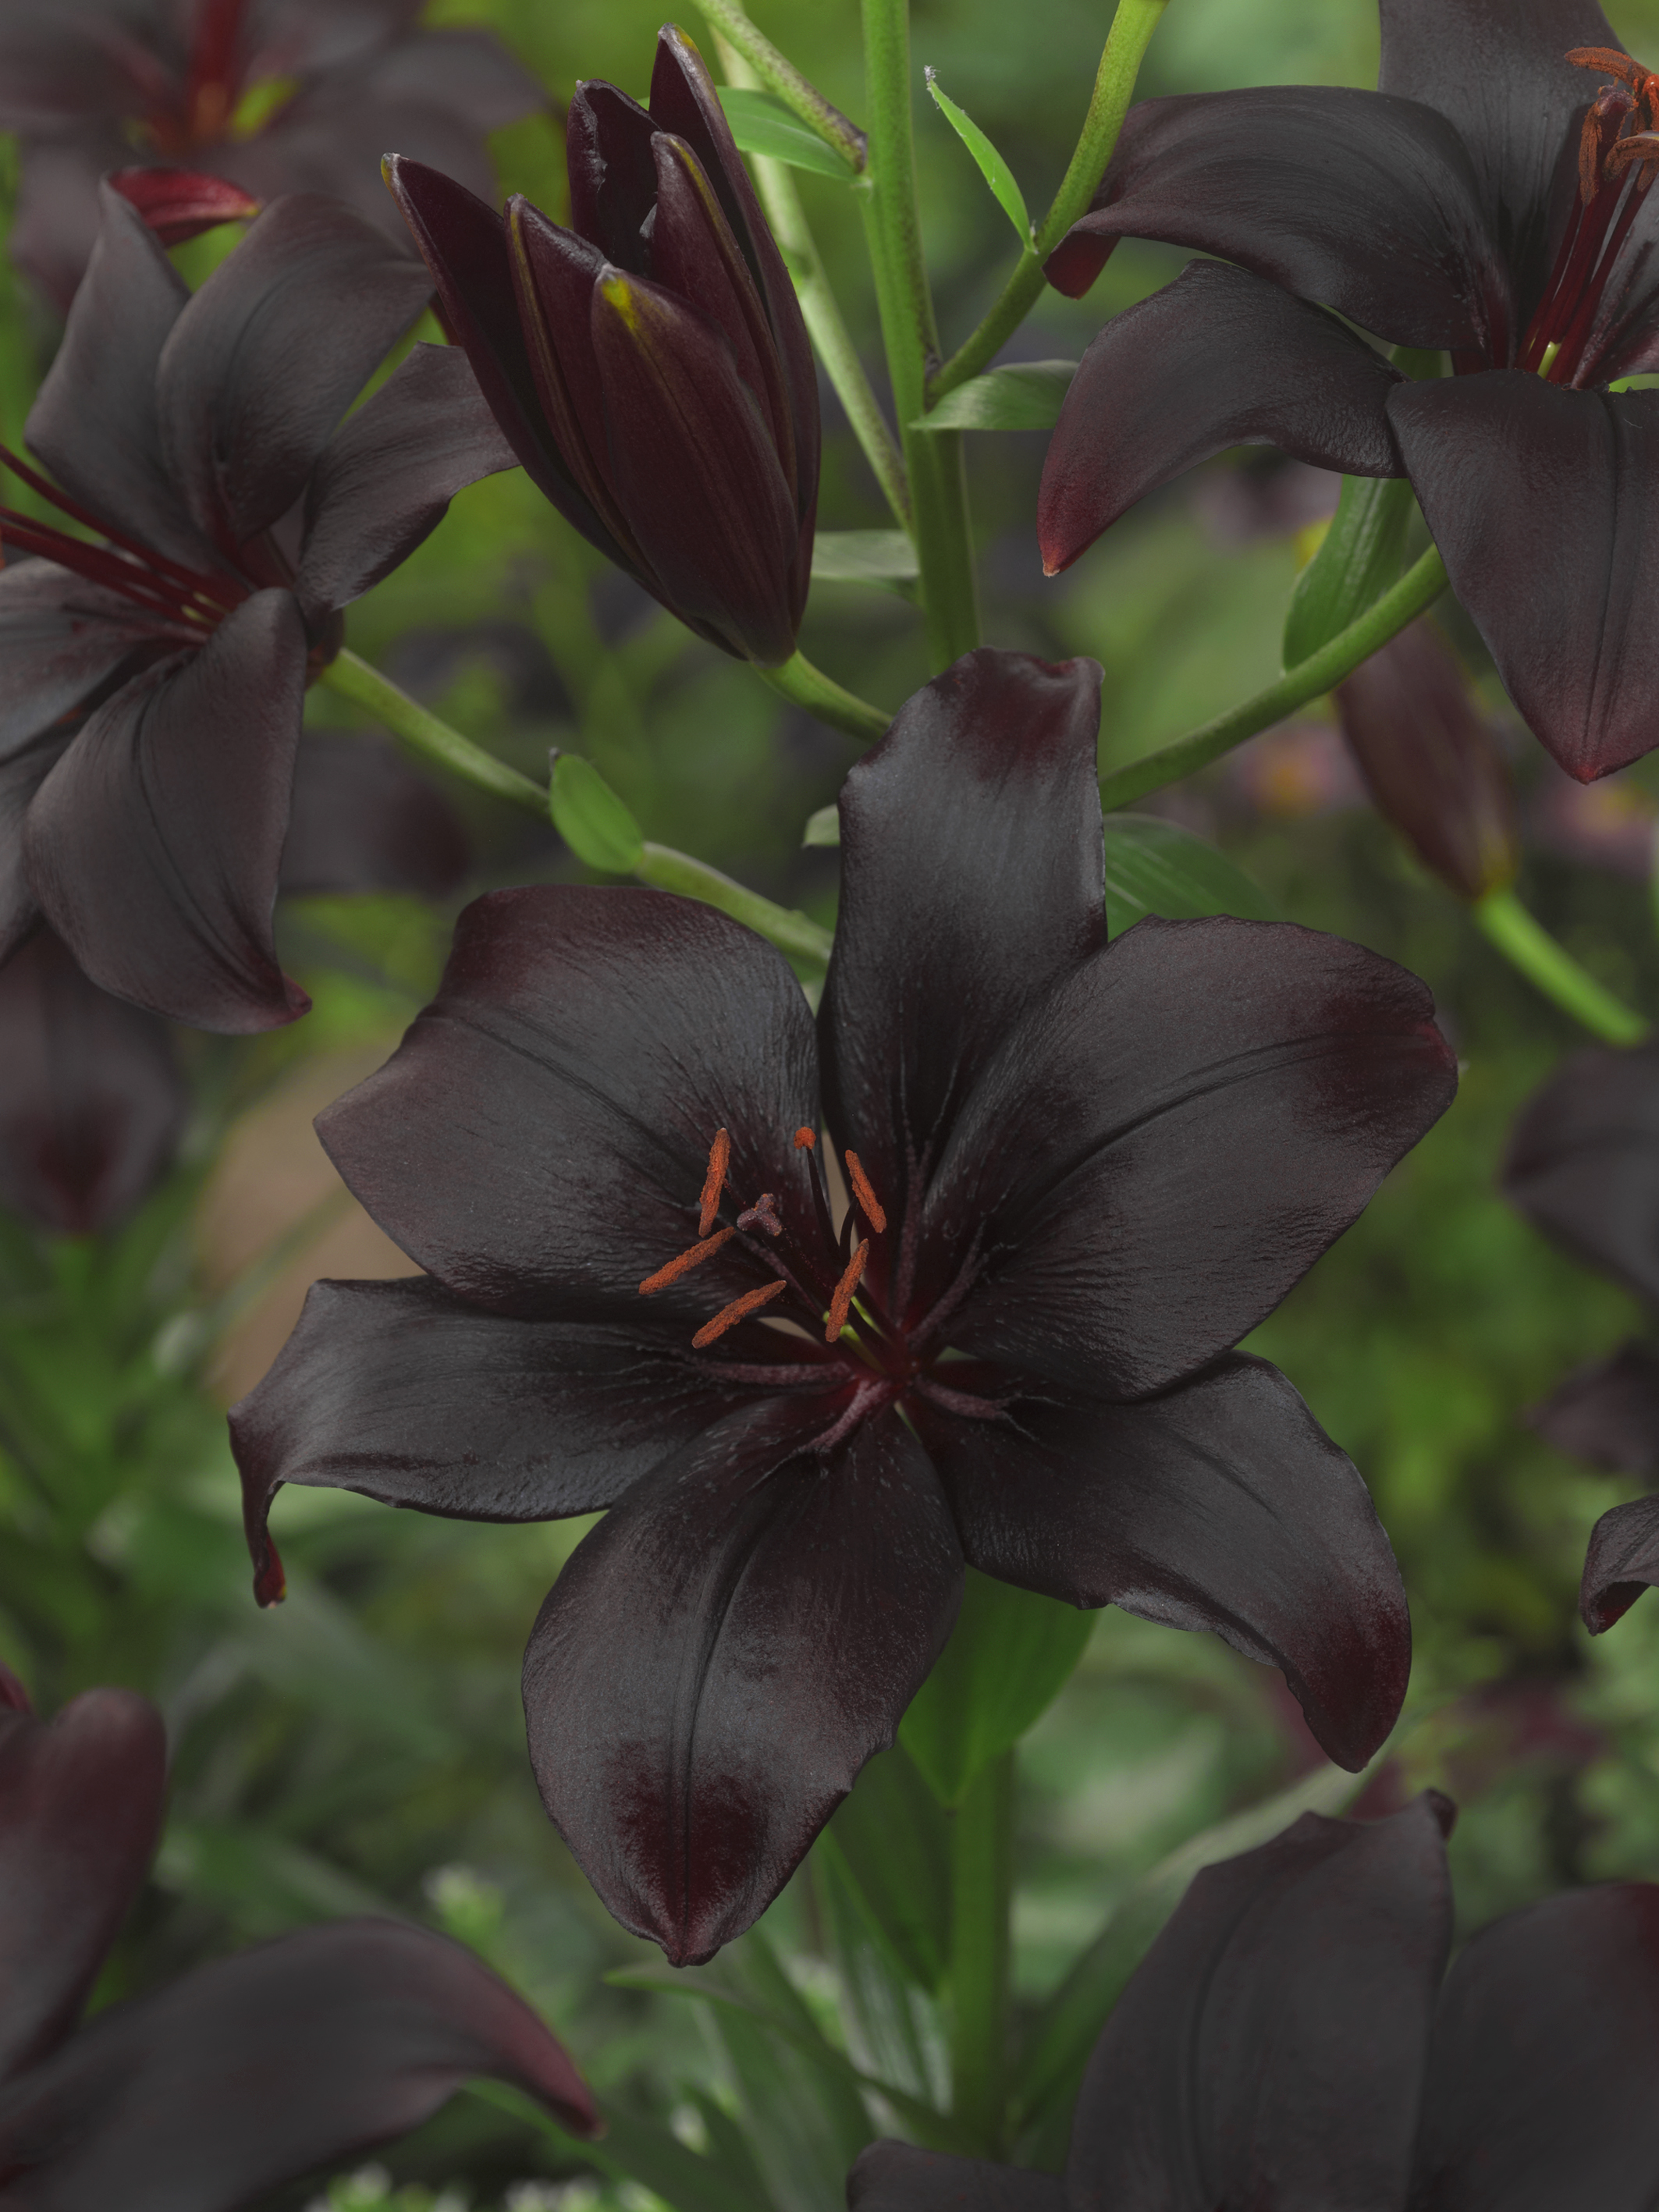 Buy Lily Bulbs Black Charm Asiatic Lily Bulbs From The Gold Medal